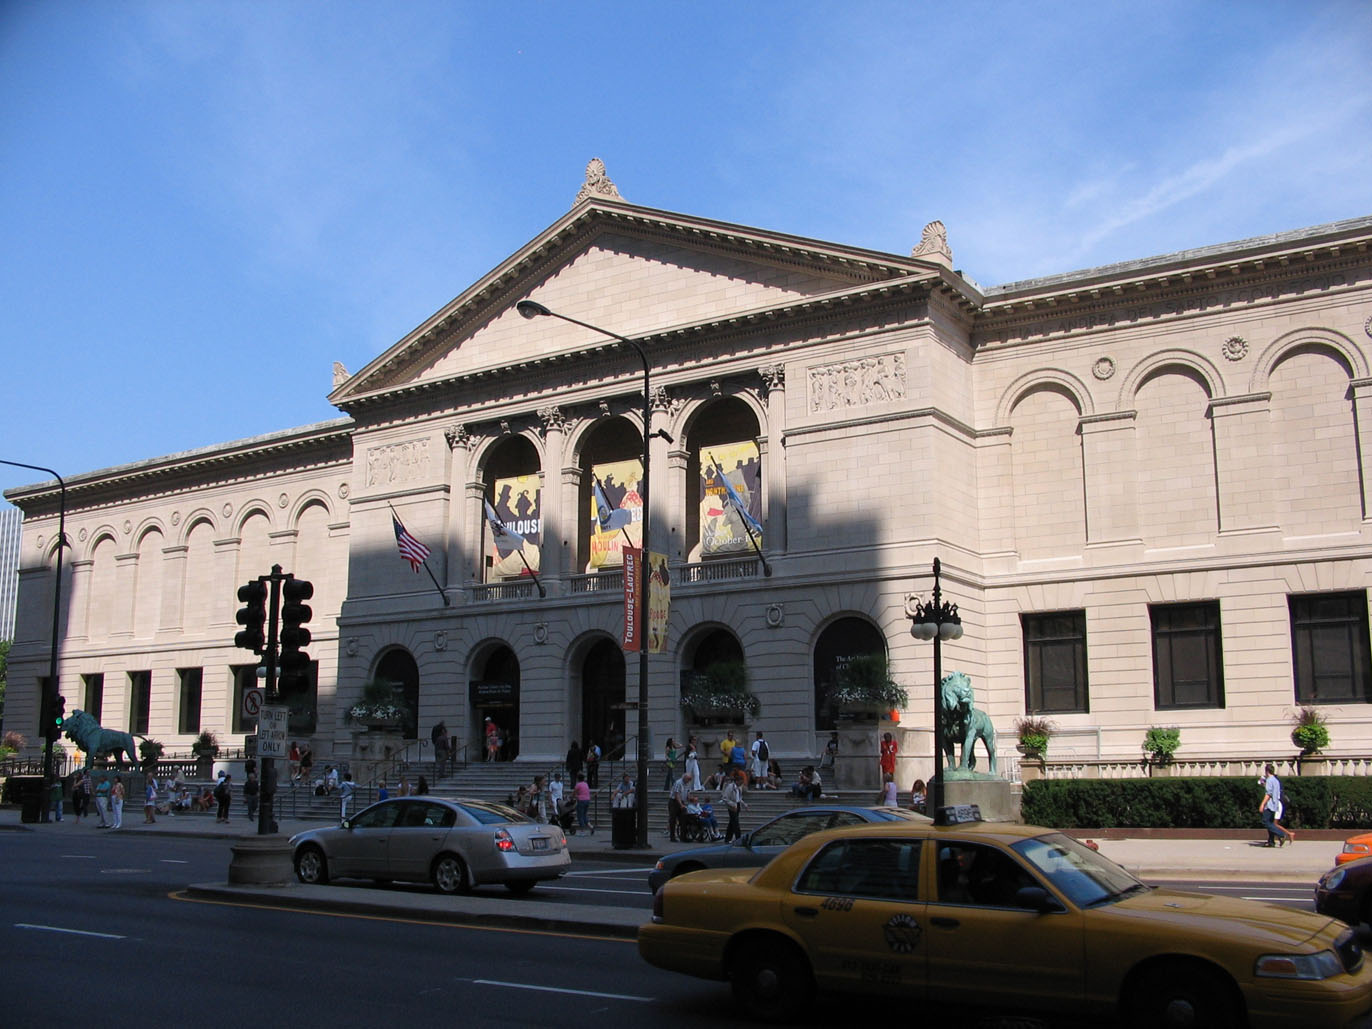 The Art Institute of Chicago has adapted its offerings for the COVID-19 era.